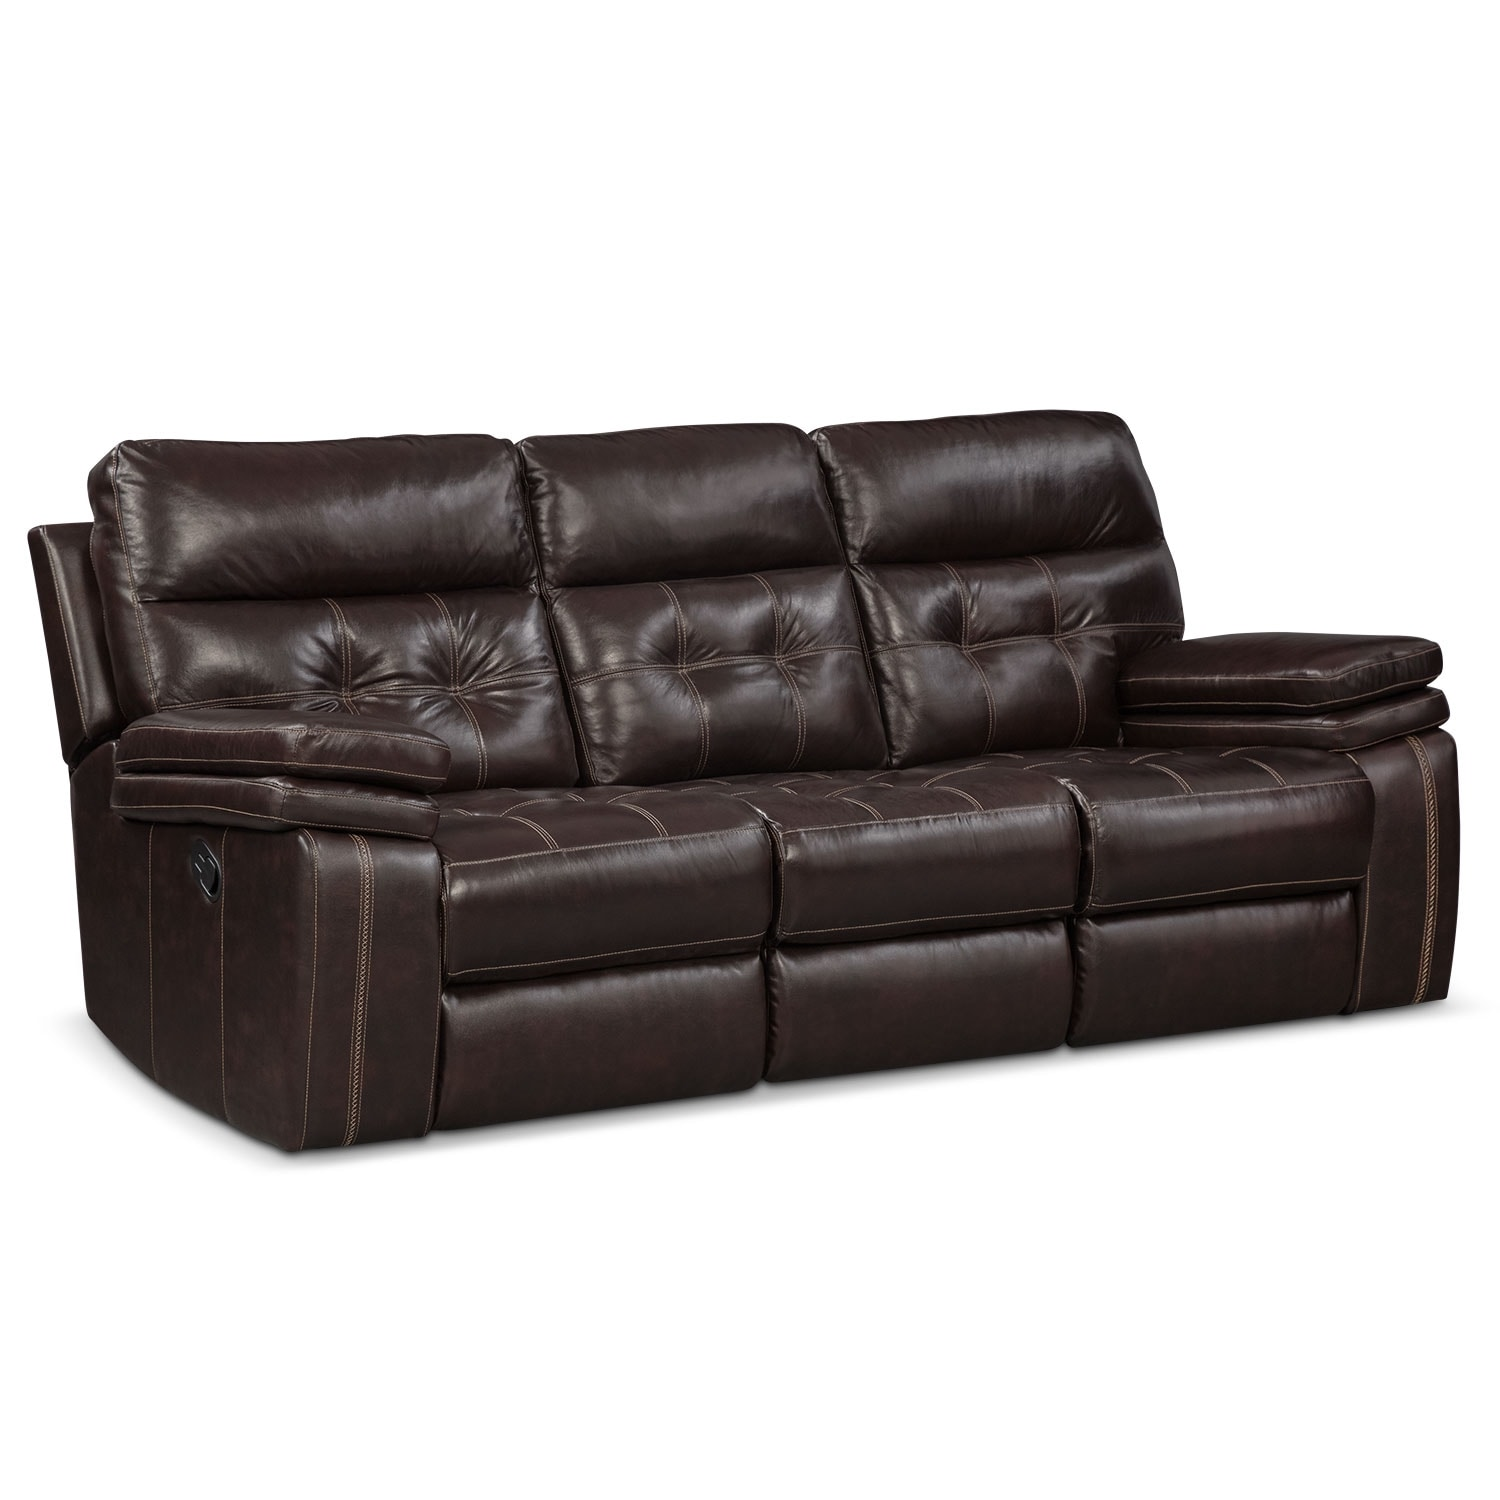 Brisco Manual Reclining Sofa And Reclining Loveseat Set Brown Value City Furniture